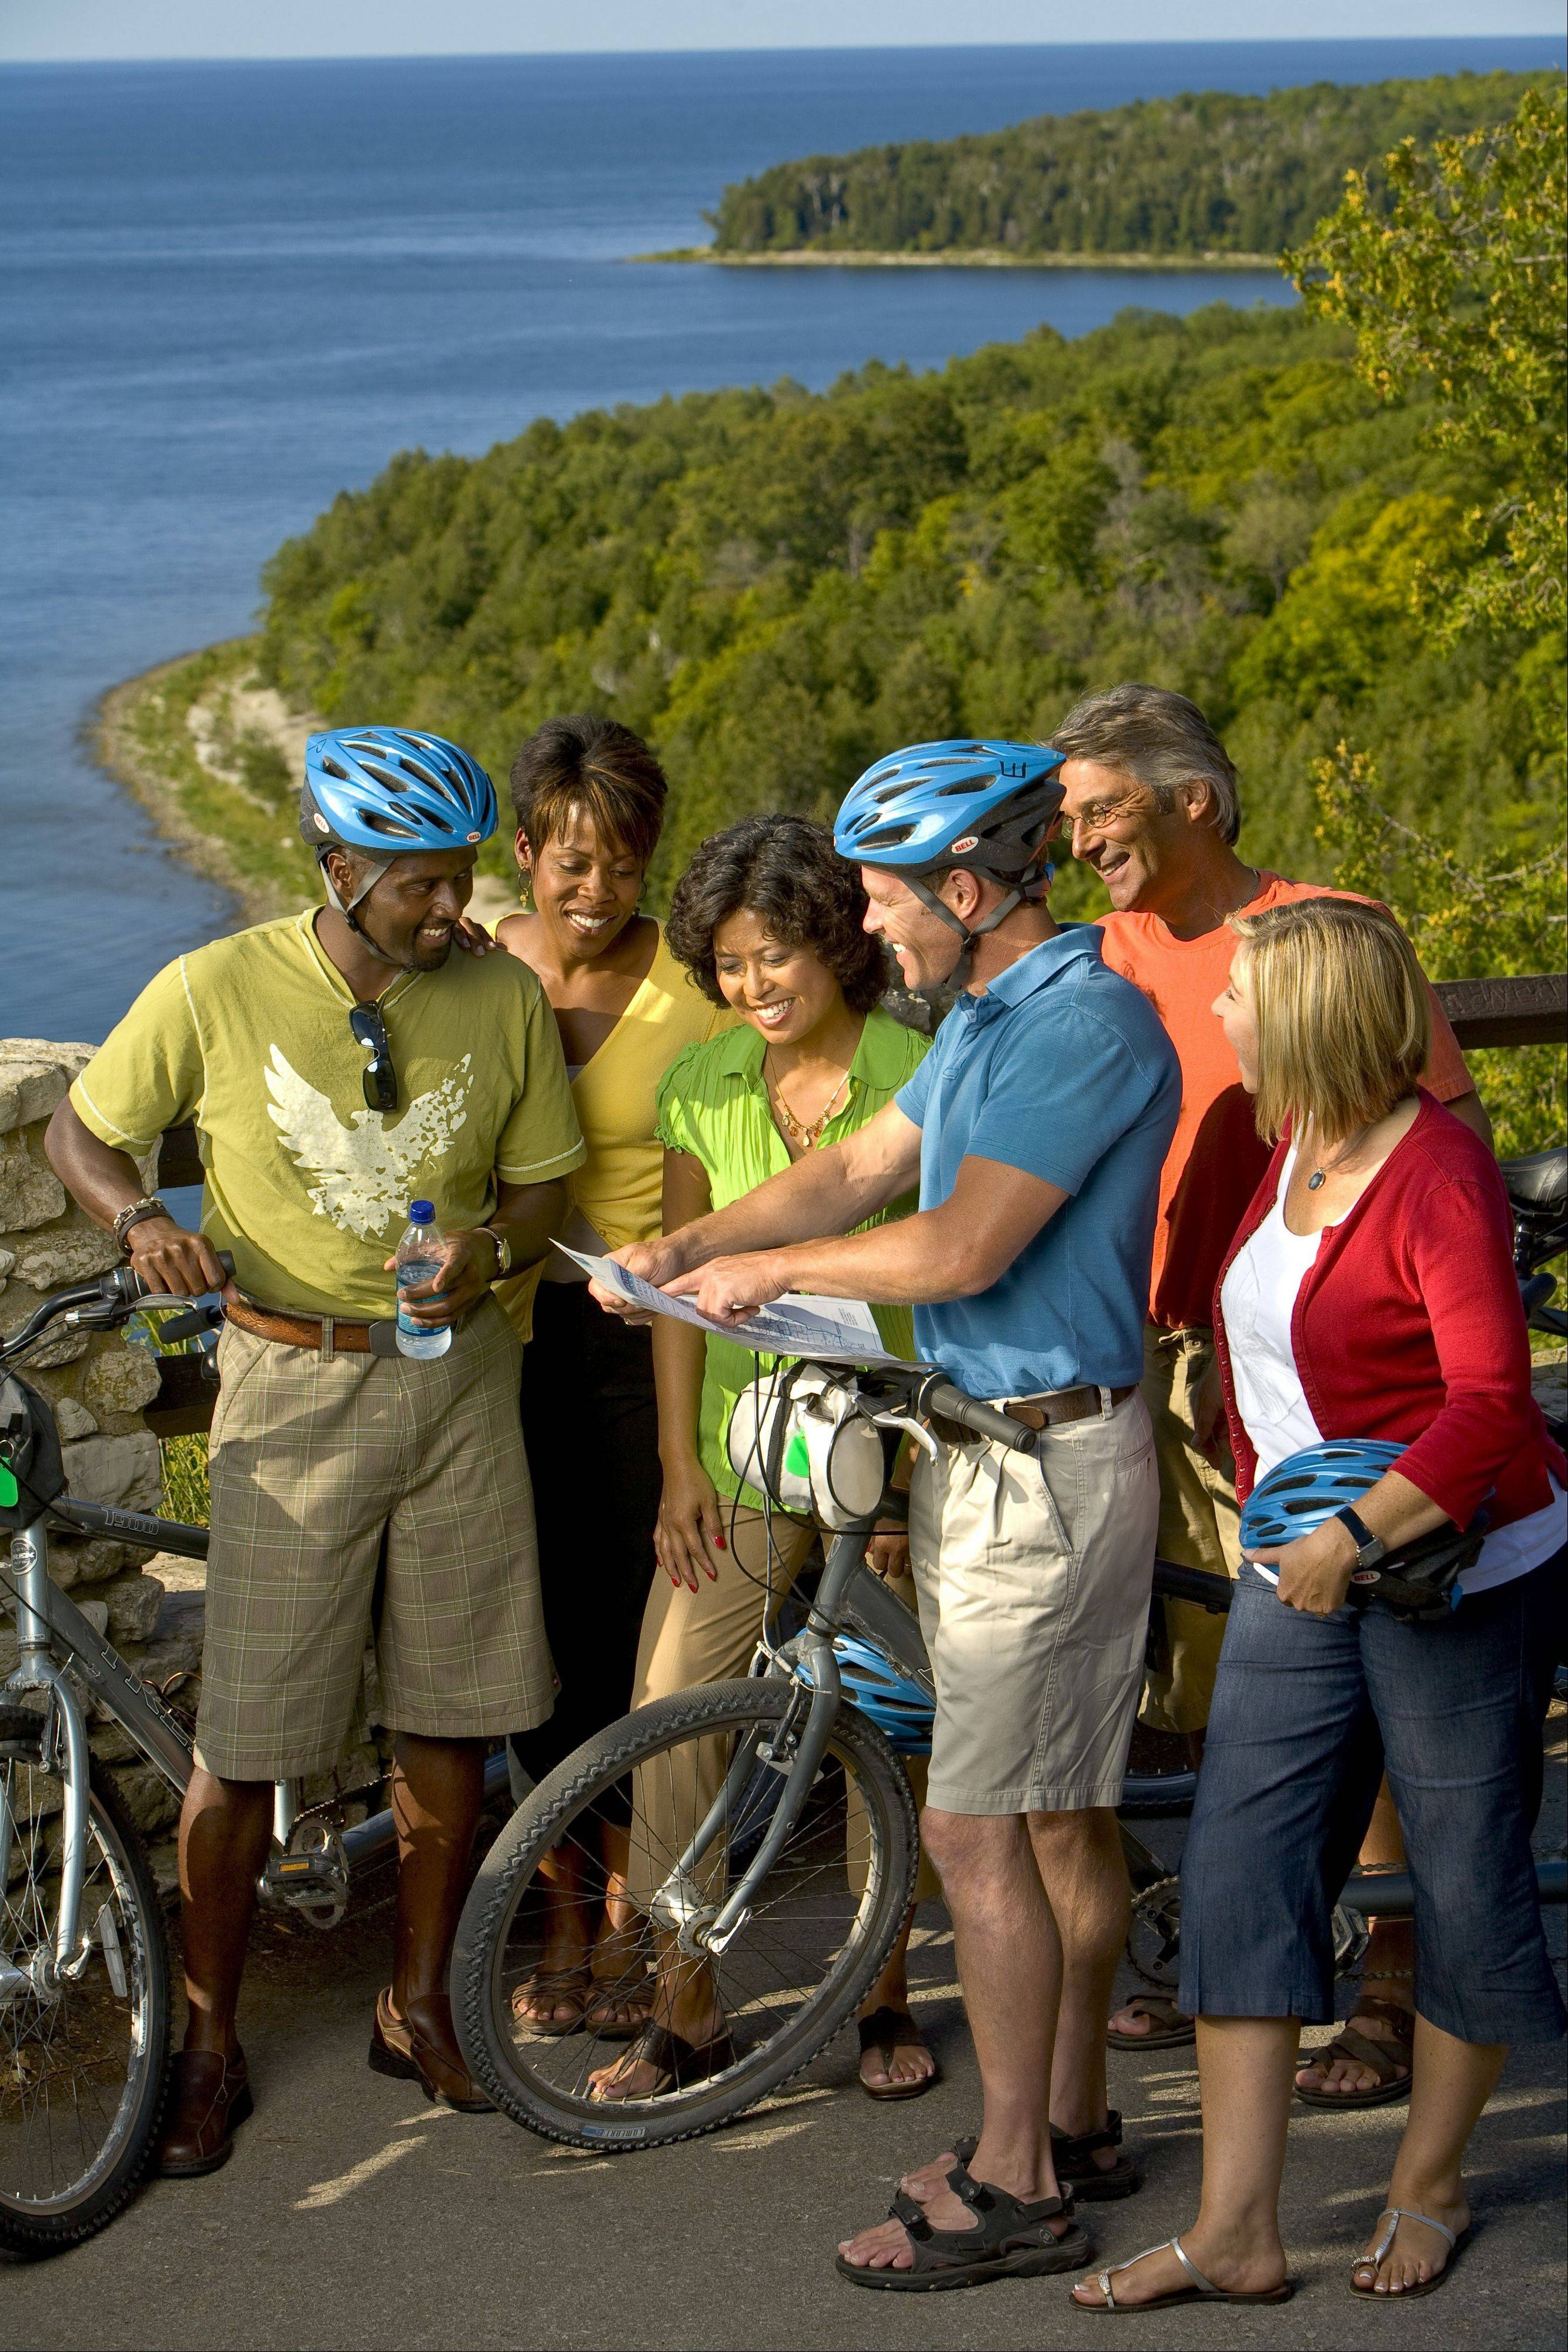 Bicyclists check out a bike map at scenic Sven's Bluff in Peninsula State Park along Door County's western coast.